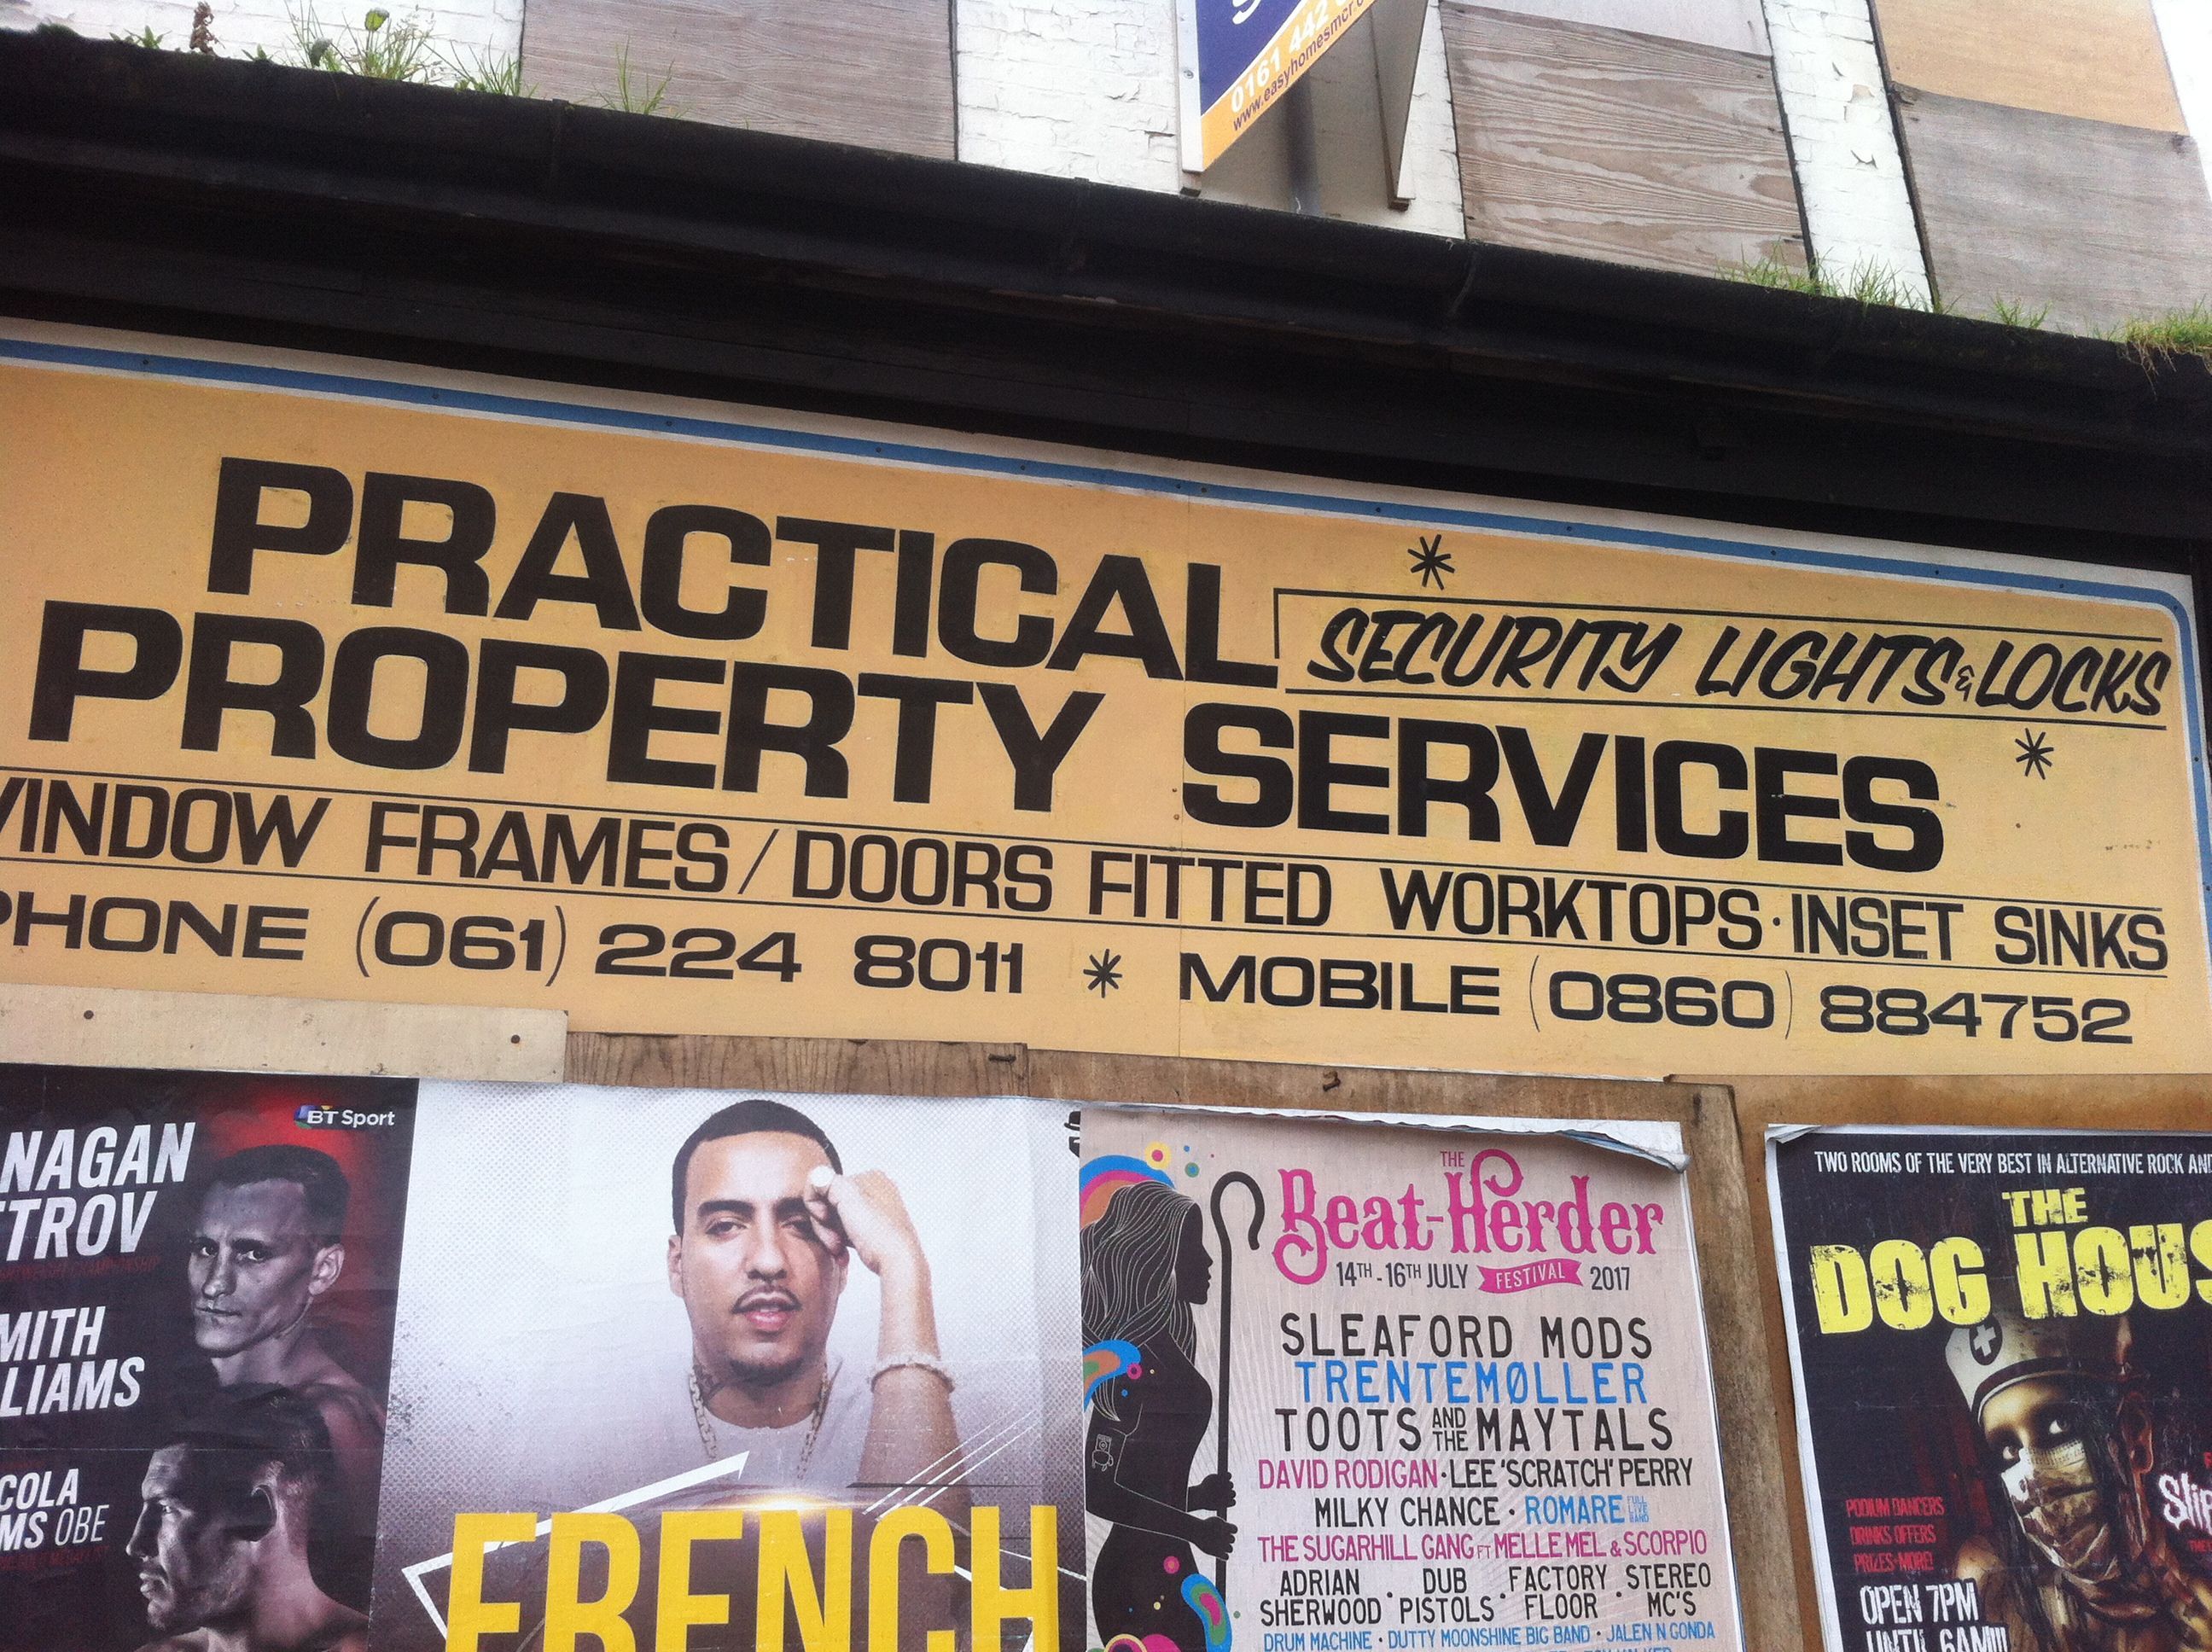 Practical Property Services, Yellow Levenshulme, by Emily Cheese